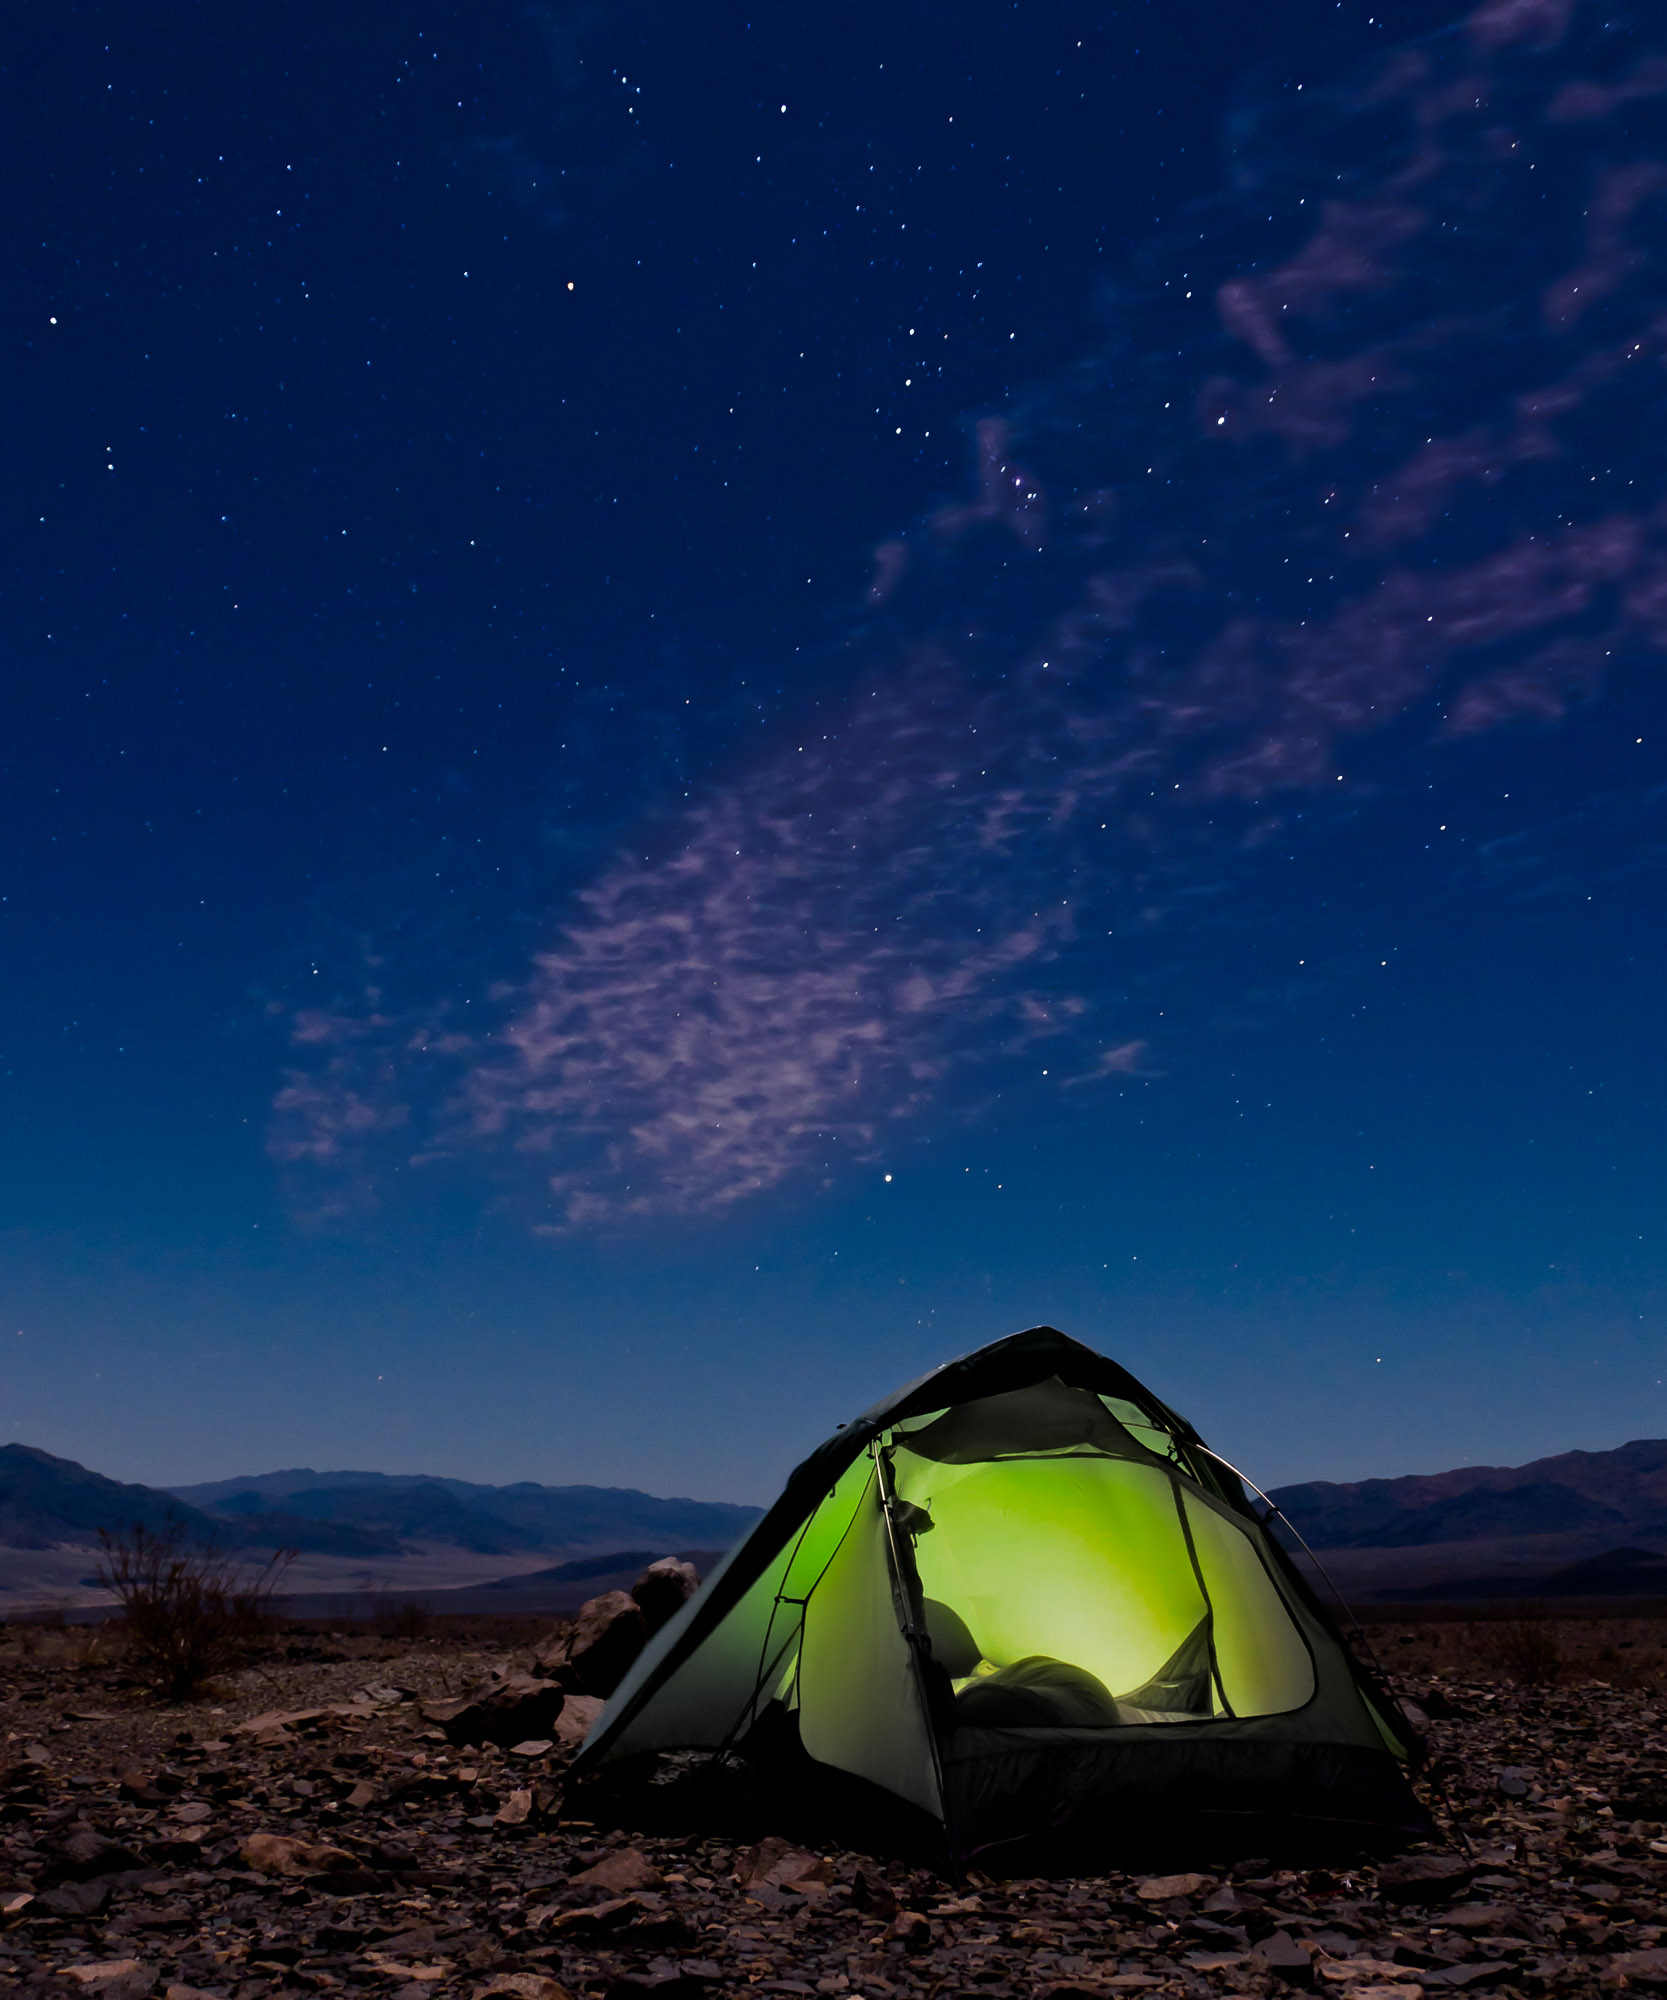 The constellation Orion over a tent - Death Valley National Park, California